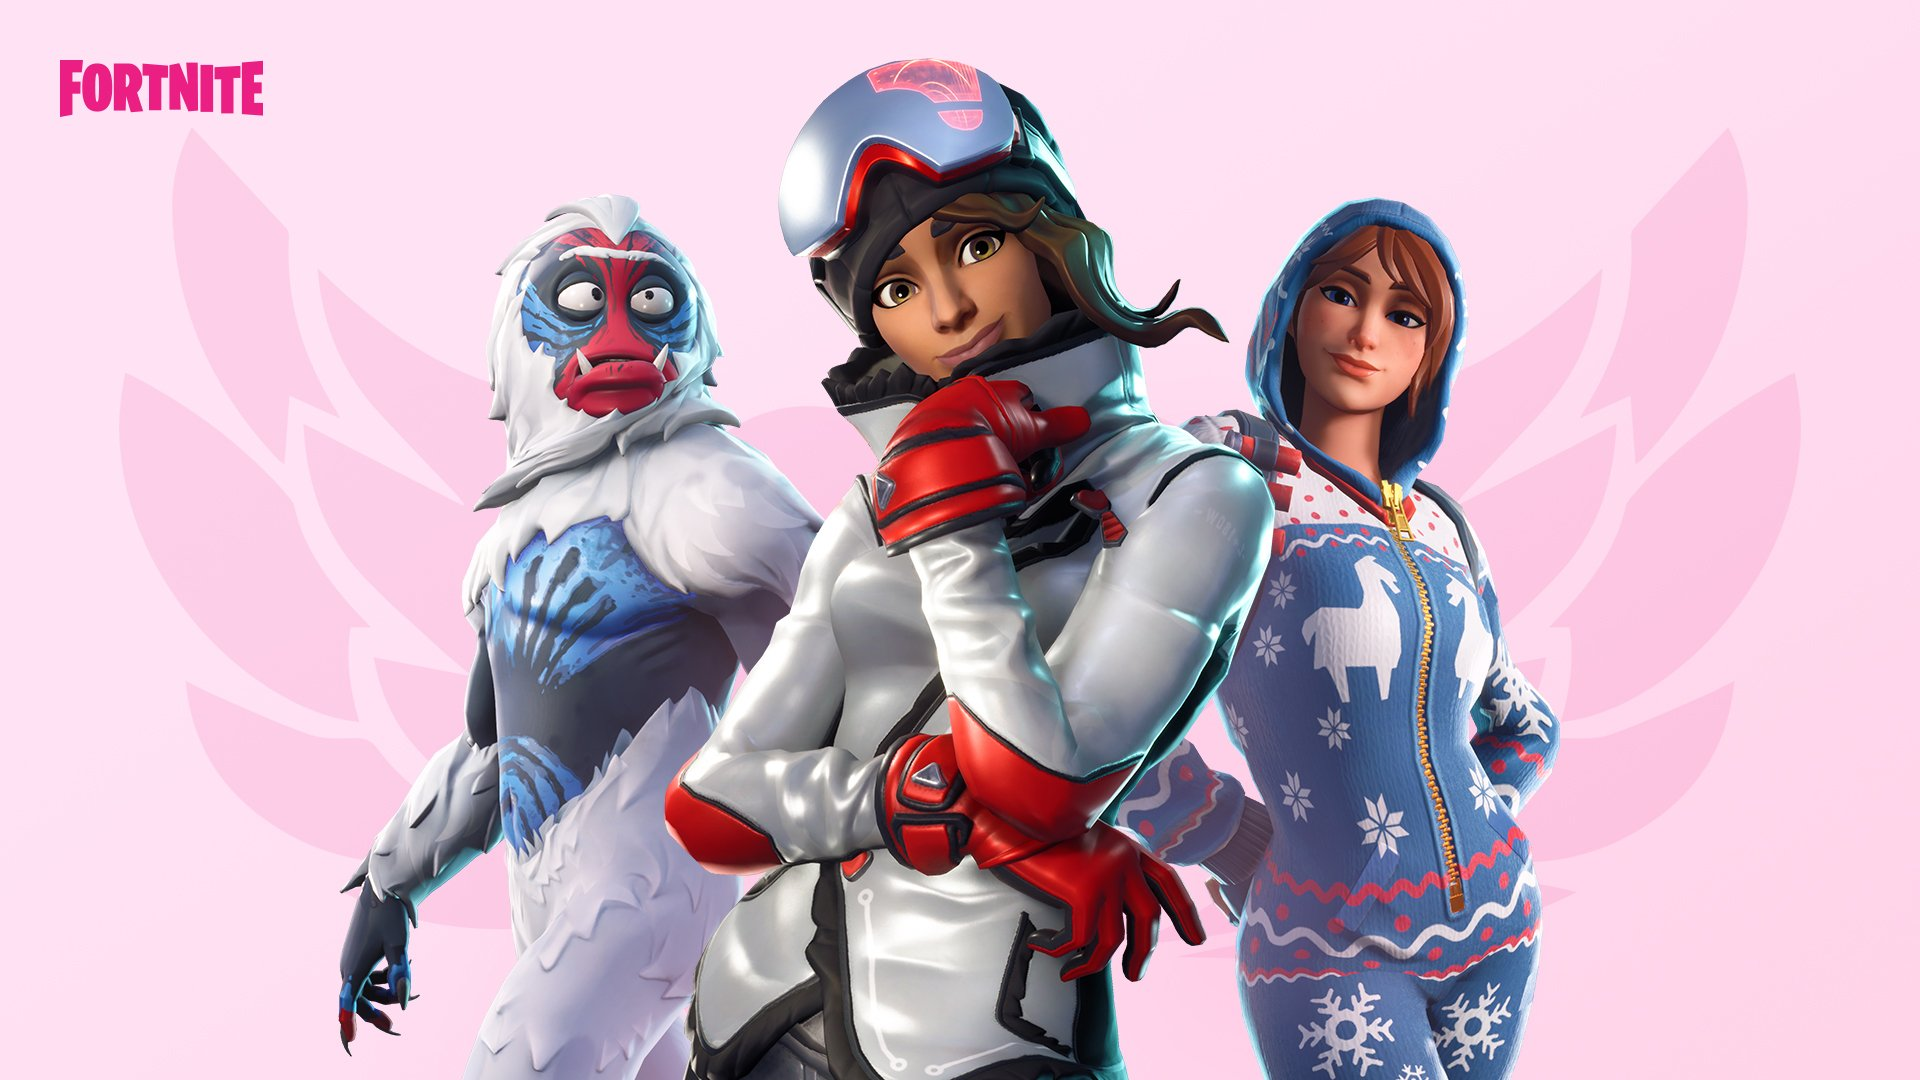 Share The Love Event Fortnite Ranked Play